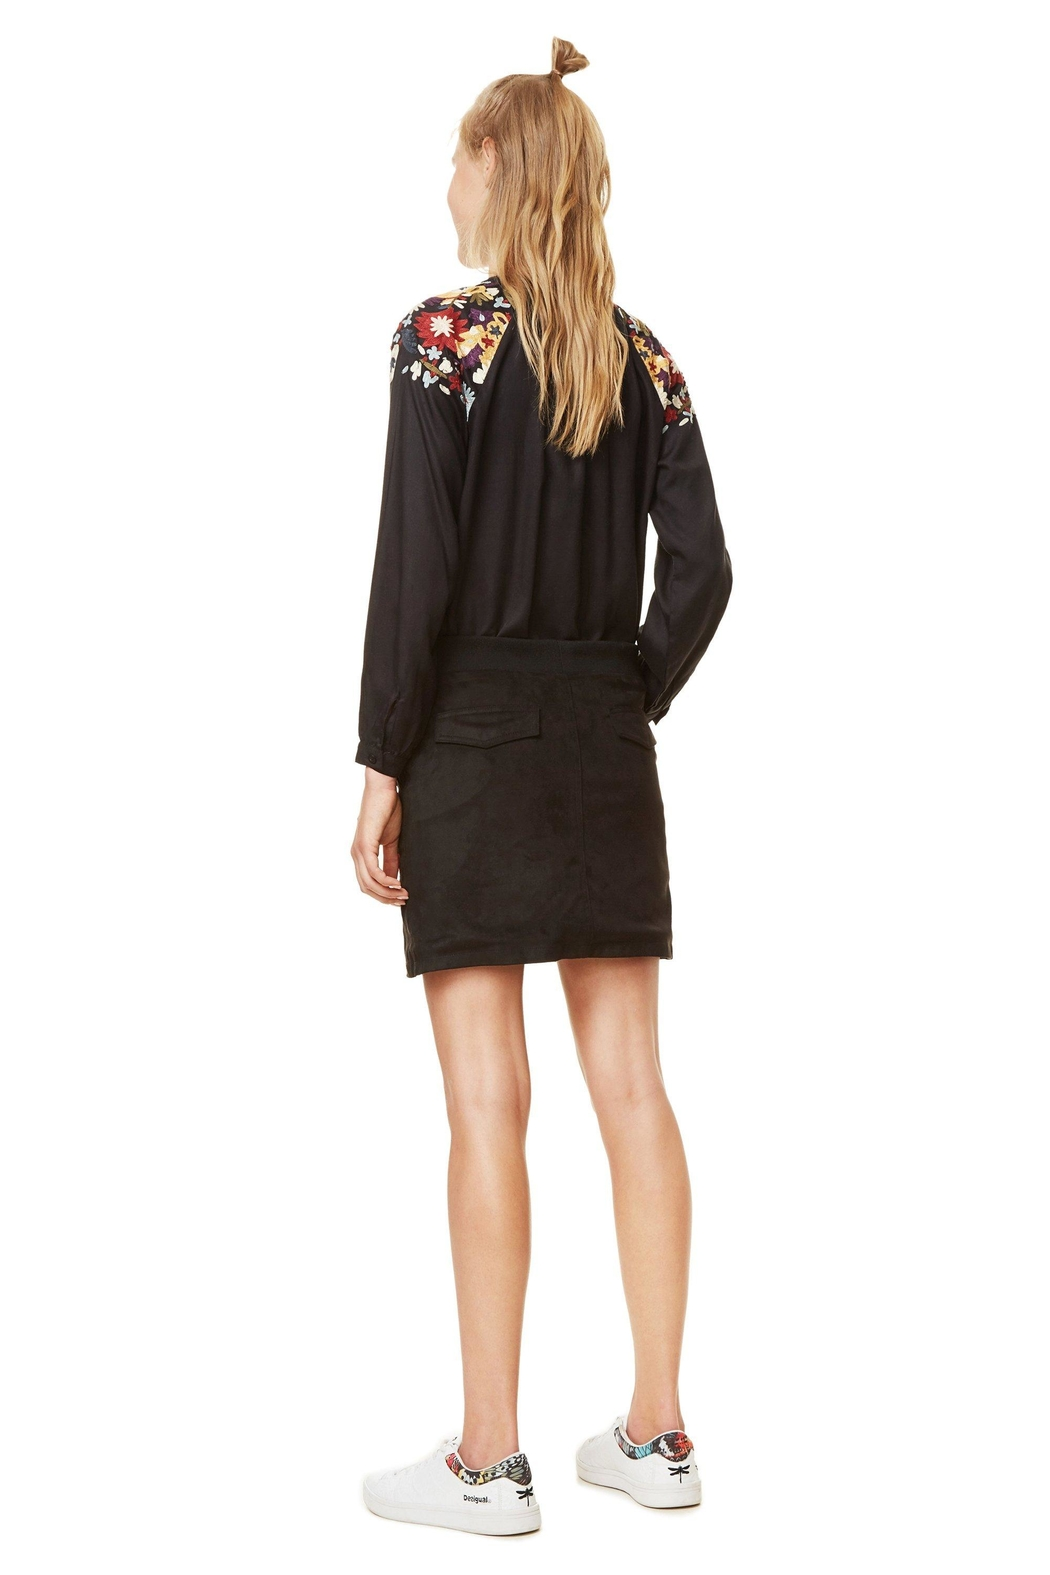 DESIGUAL Ariadna Embroidered Skirt - Back Cropped Image